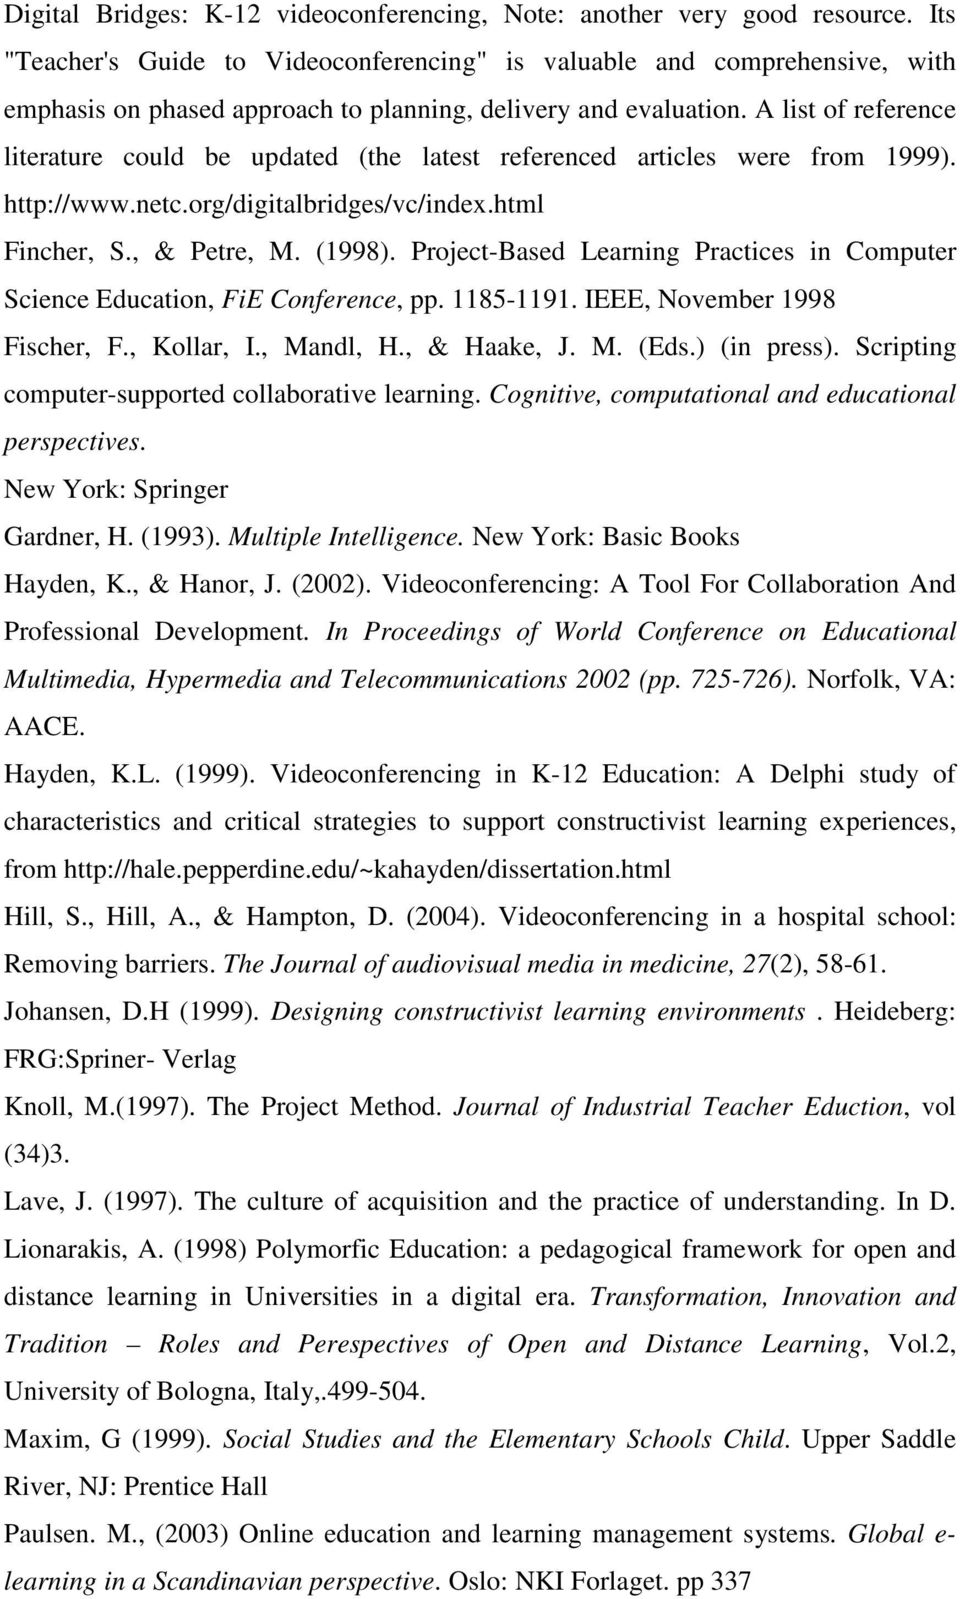 A list of reference literature could be updated (the latest referenced articles were from 1999). http://www.netc.org/digitalbridges/vc/index.html Fincher, S., & Petre, M. (1998).